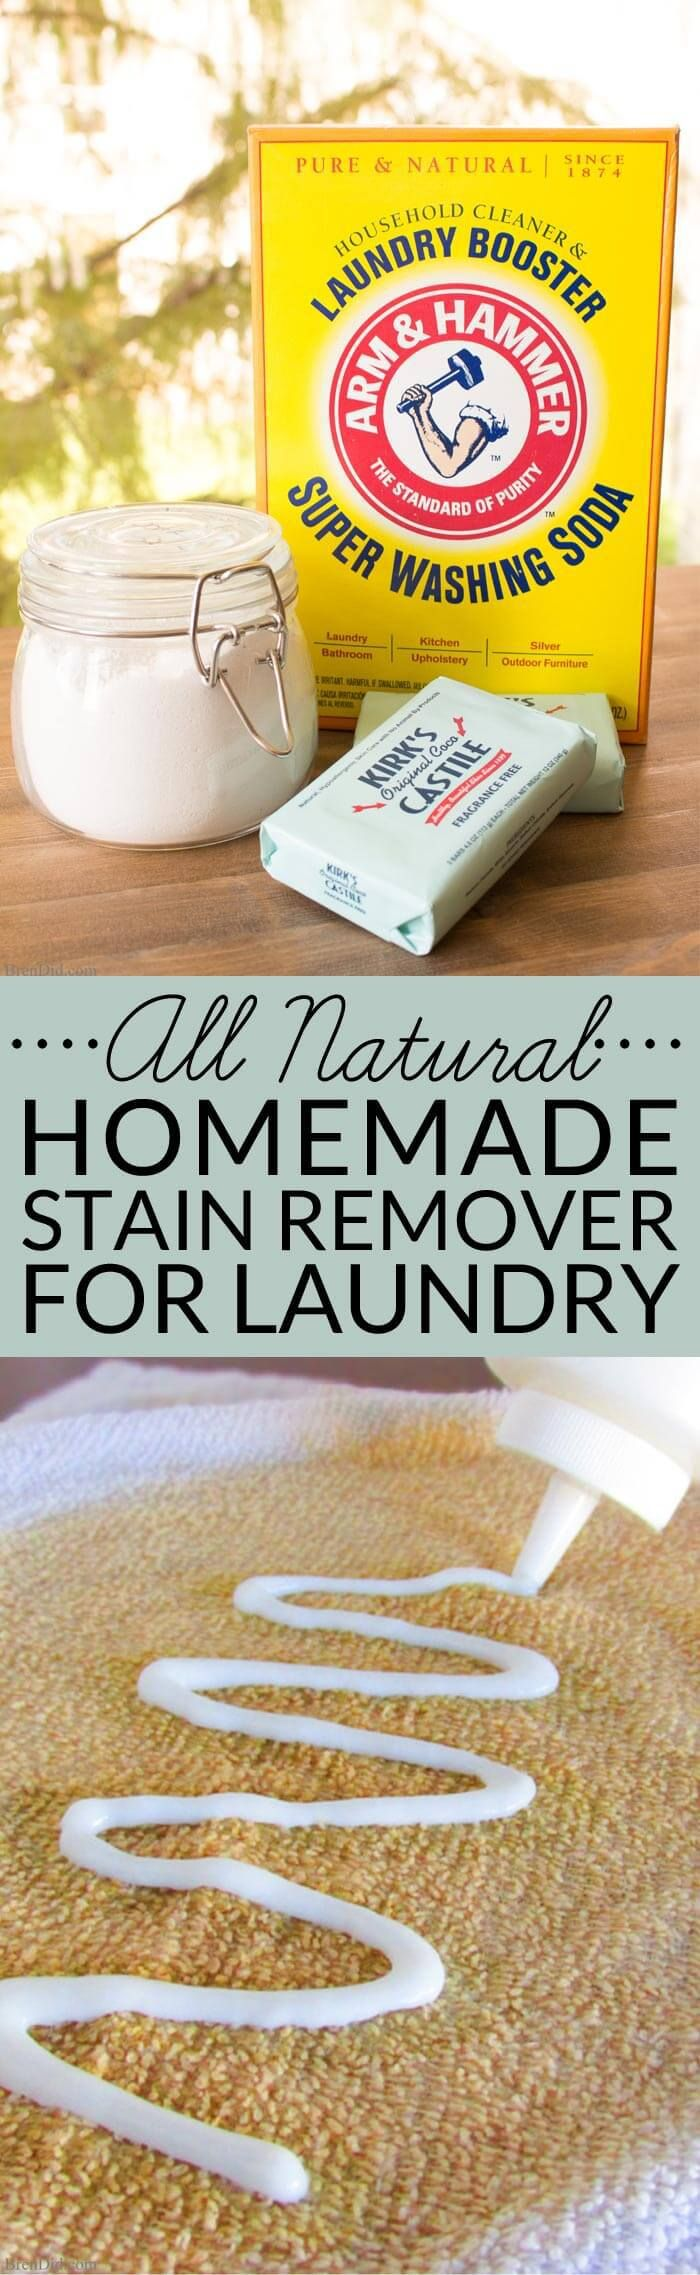 This All-Natural Homemade Stain Remover for Laundry is a simple laundry pre-treater and effective stain fighter that you can feel good about using.